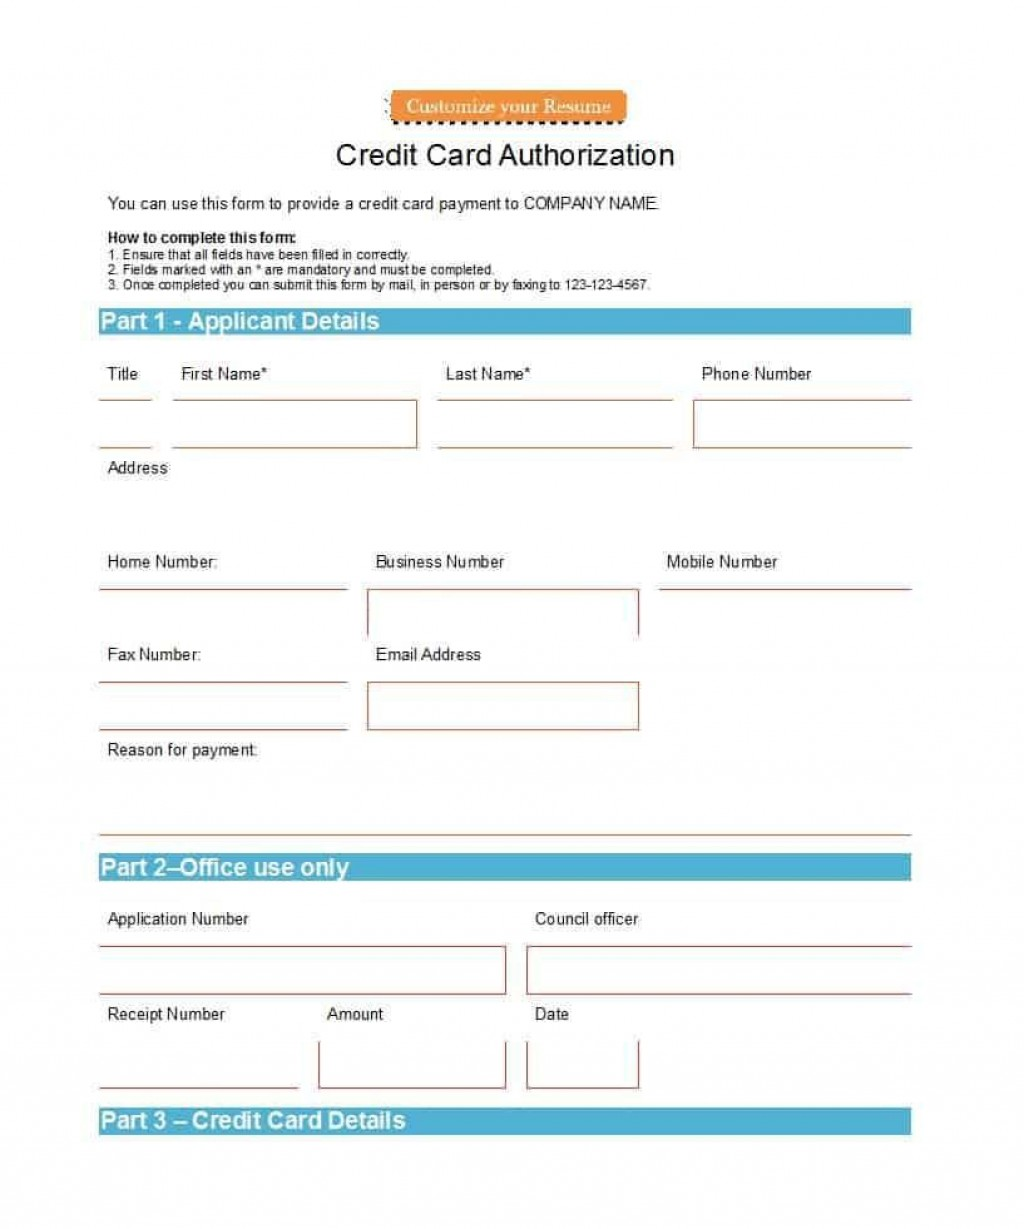 004 Simple Credit Card Form Template Html Photo  Example Payment CsLarge